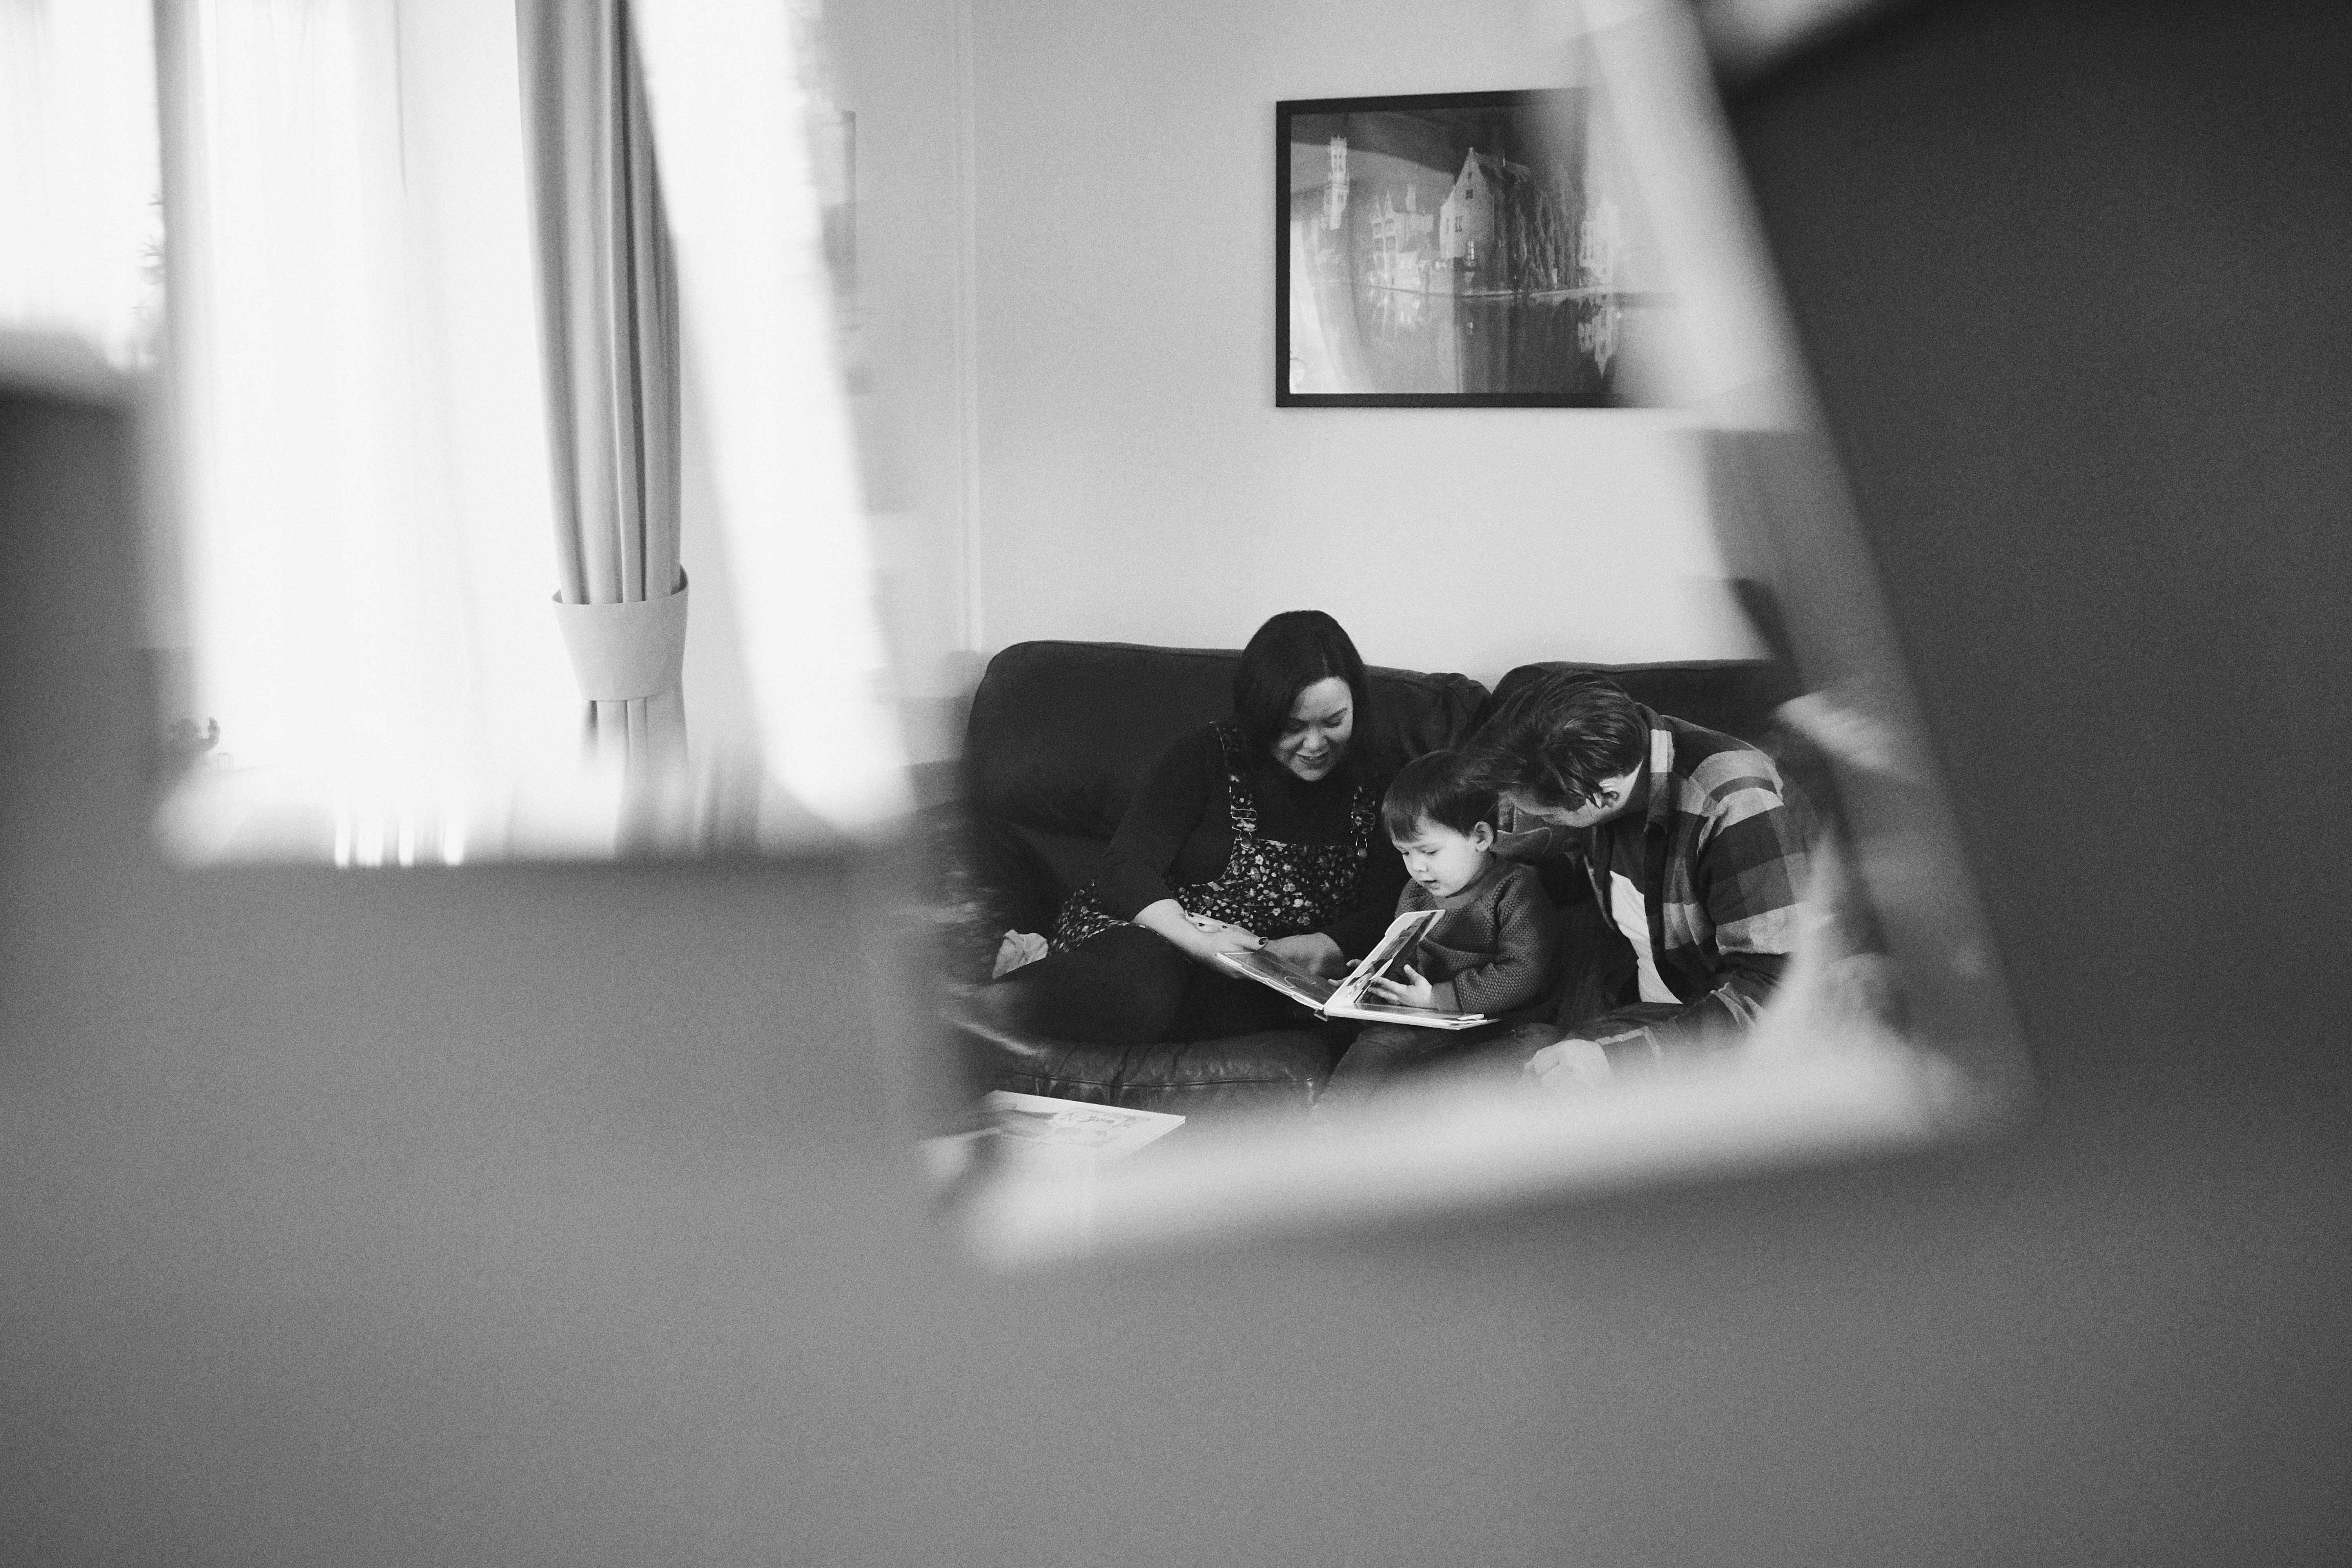 creative photo through mirror reflection of family reading at home